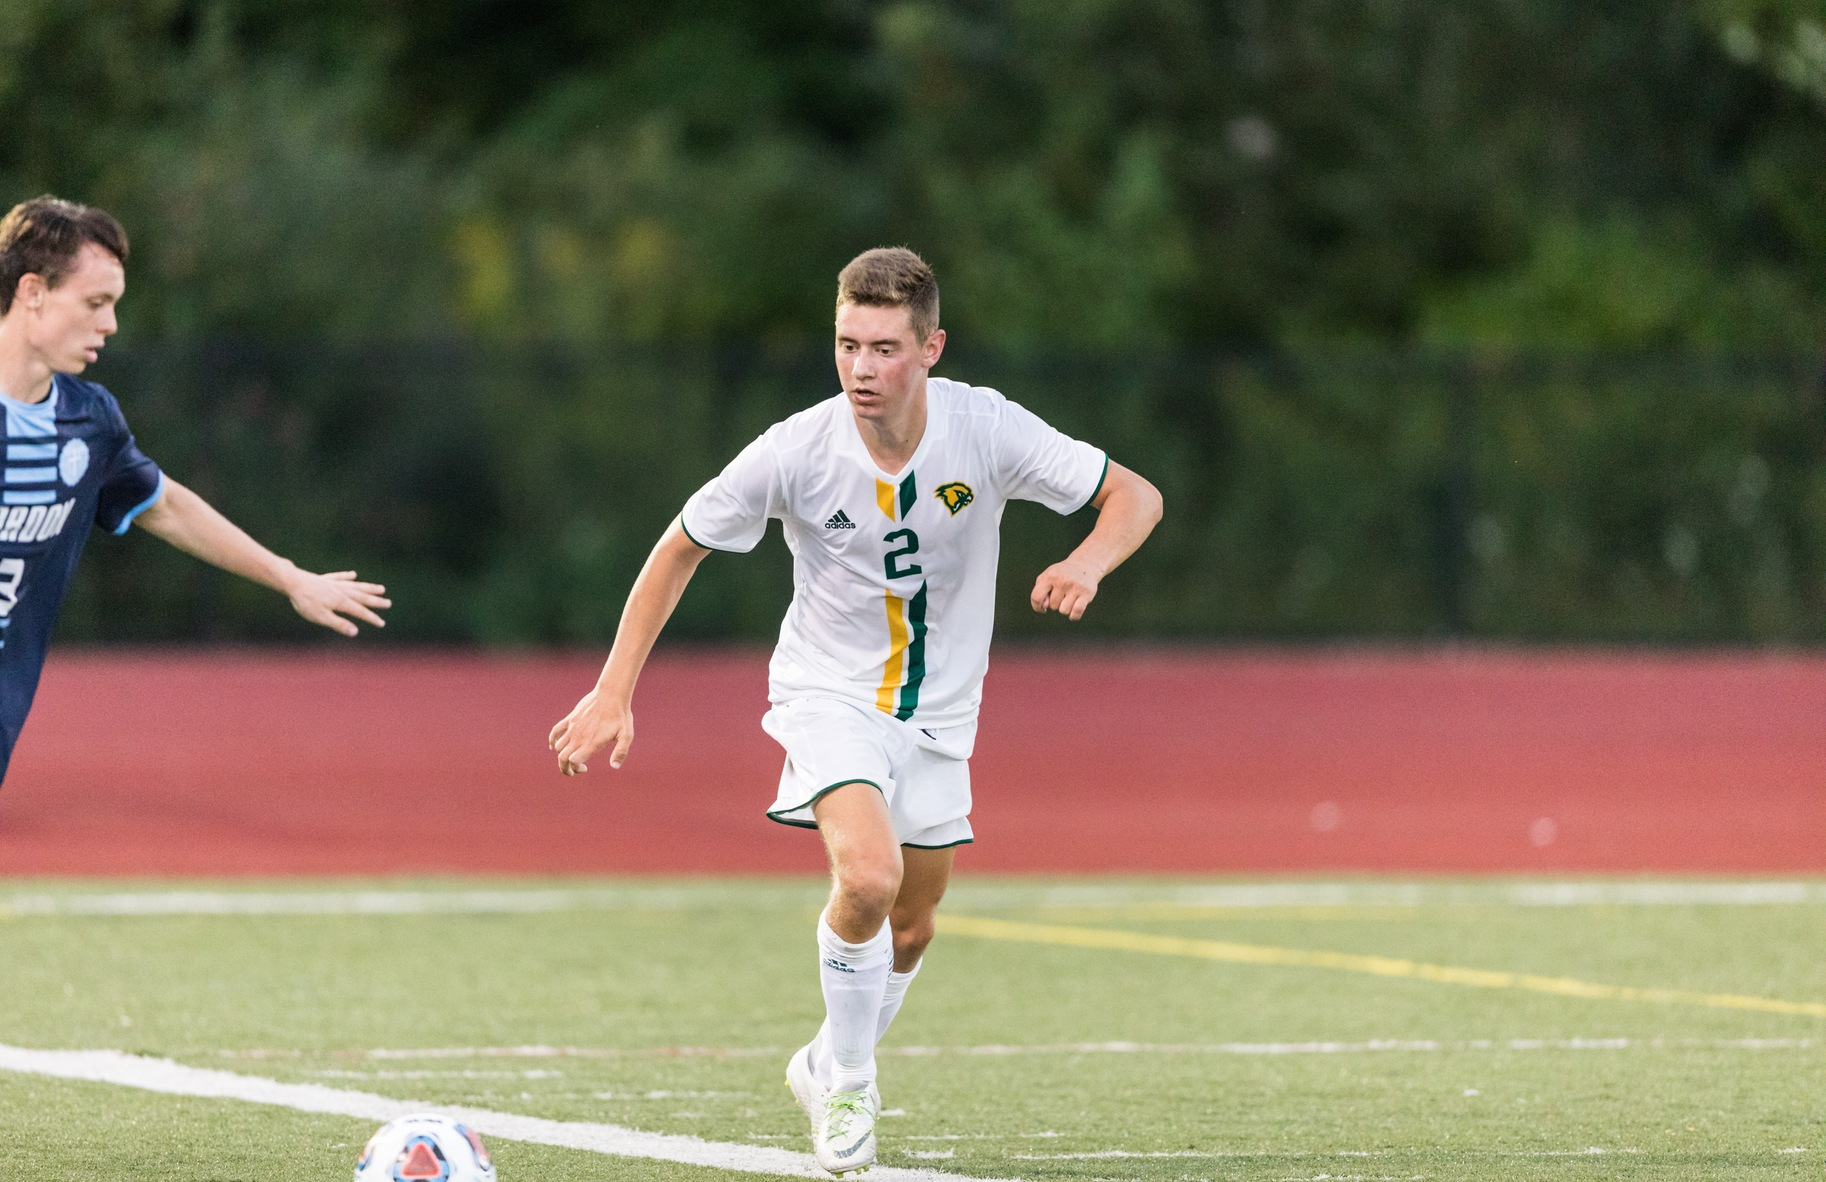 Falcons Edged By Vikings, 2-0 In MASCAC Action